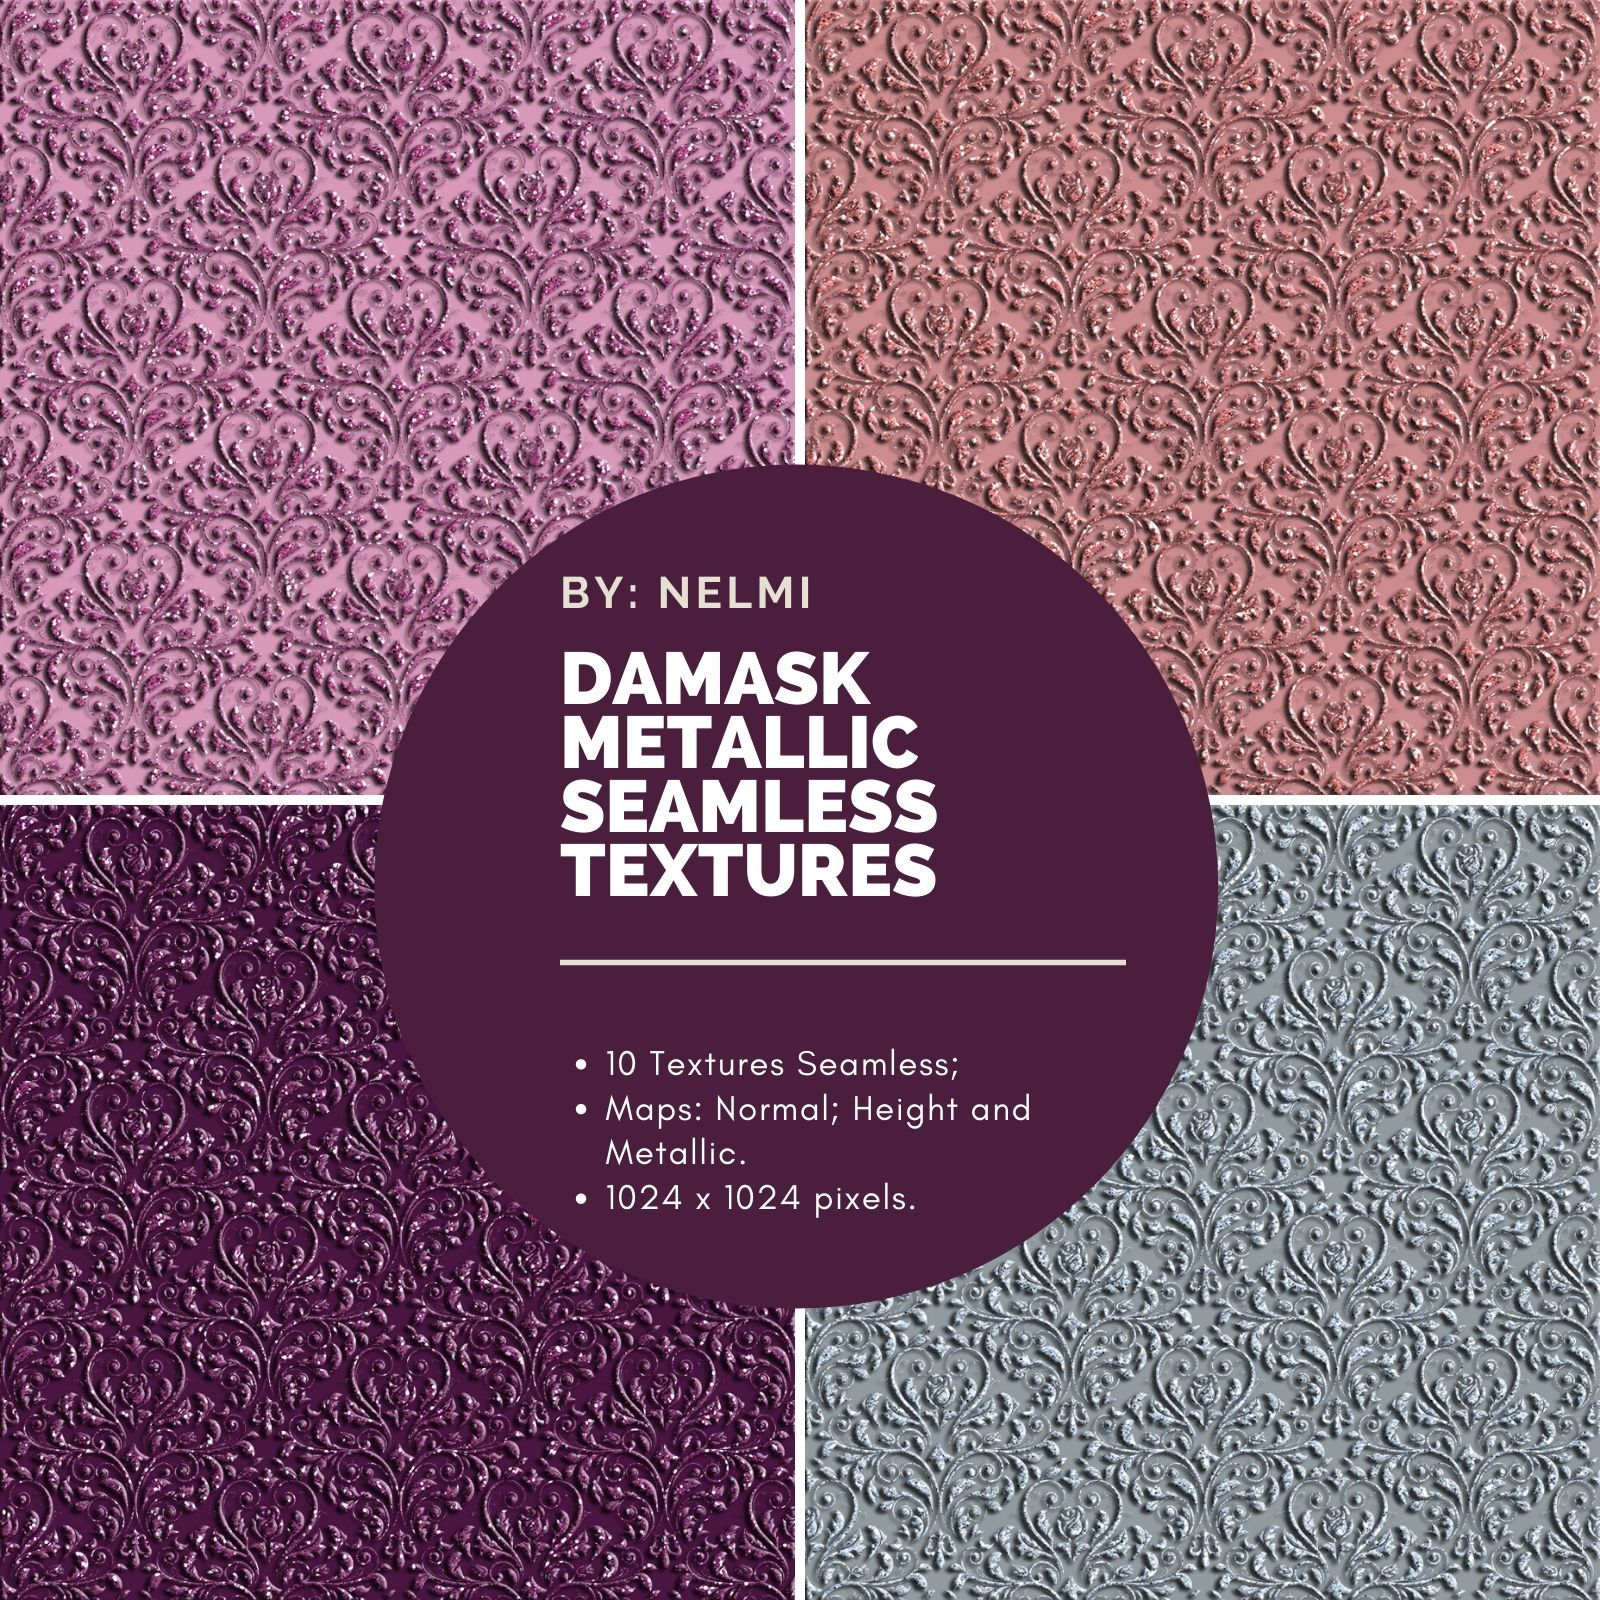 10 Damask Metallic Seamless Textures by nelmi